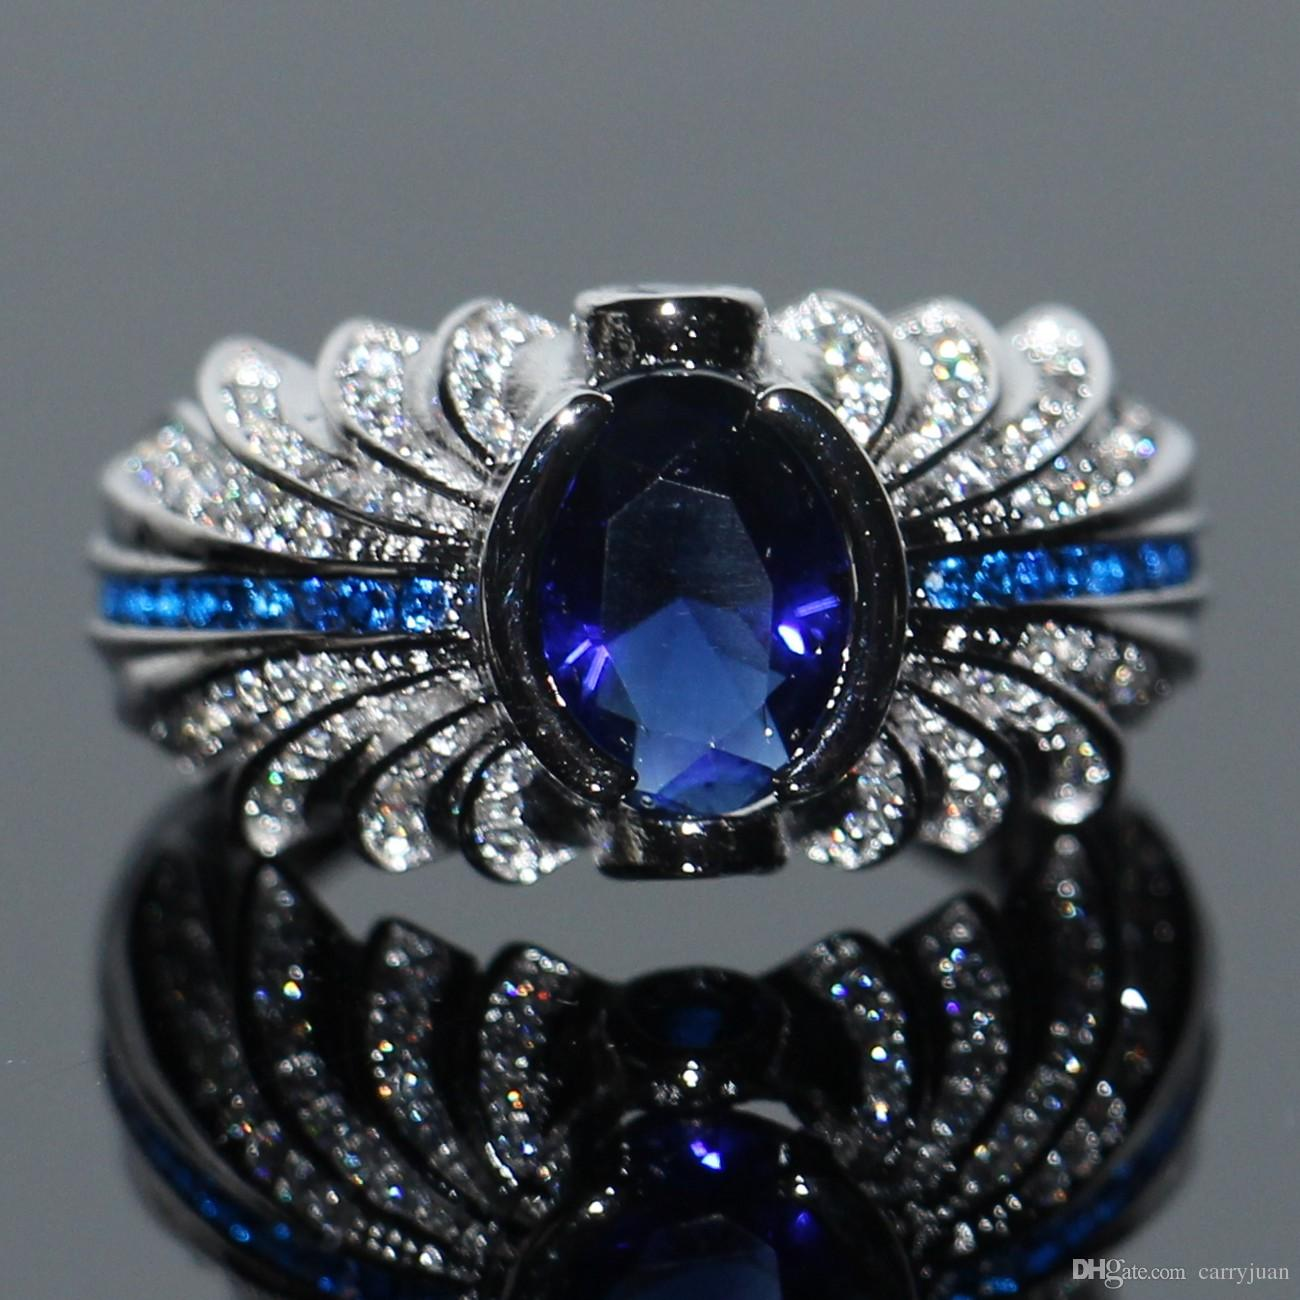 2019 Lovers\u0026#39; Ring For Men Luxury Jewelry Top Selling Brand ...